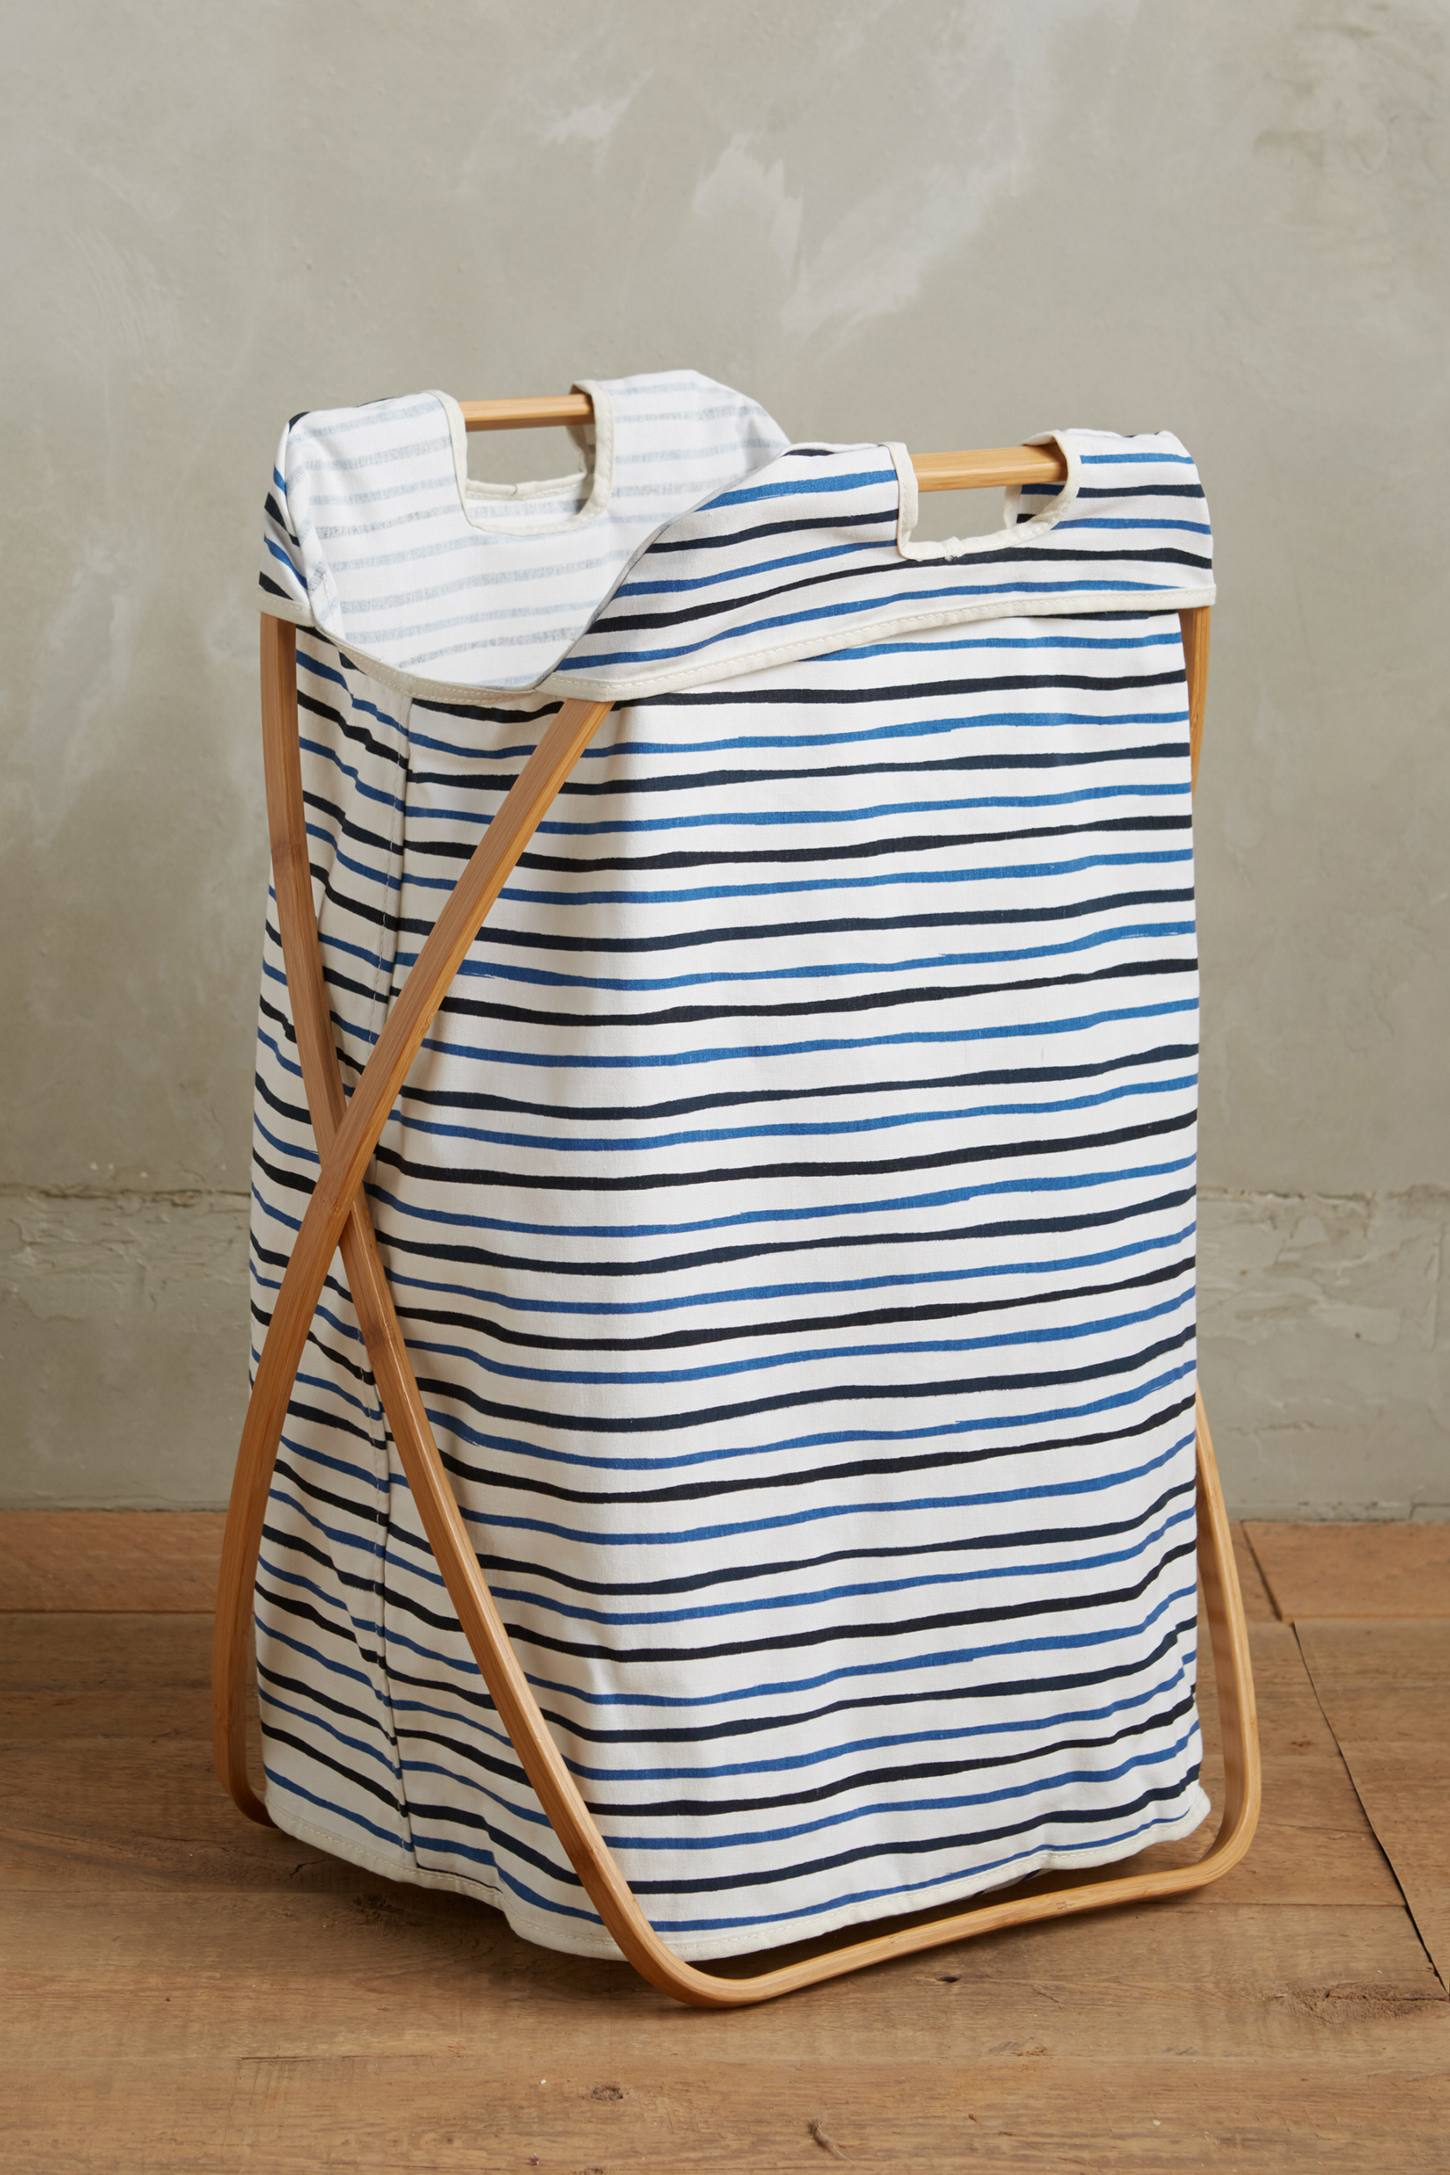 Seastriped Laundry Basket